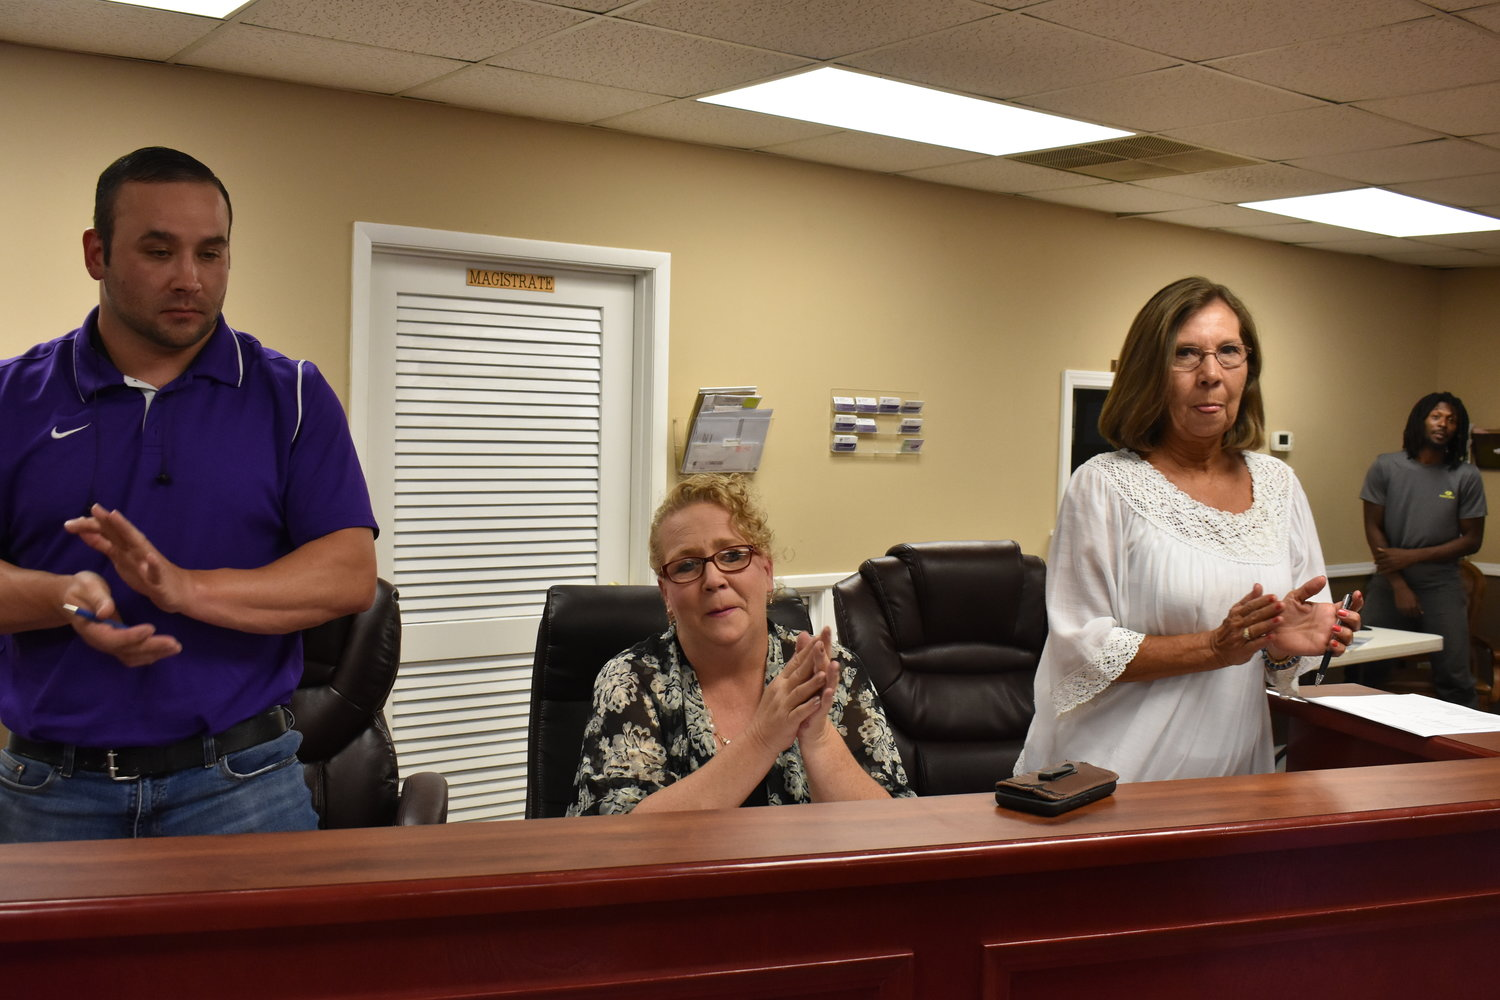 Parrish Mayor Heather Hall, seated, watches as she is given a spontaneous standing ovation during Tuesday night's Parrish City Council meeting, after she announced her resignation.